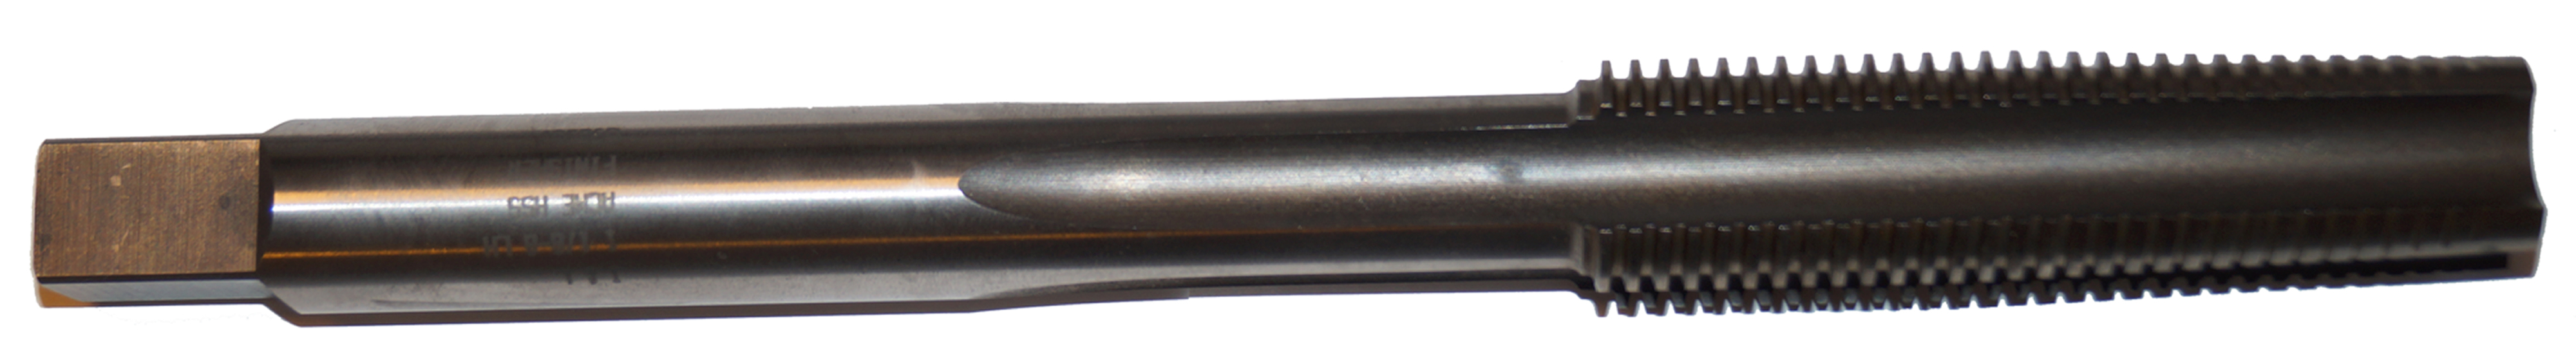 "Acme Tap 1-1/8""-8 LH Finisher"